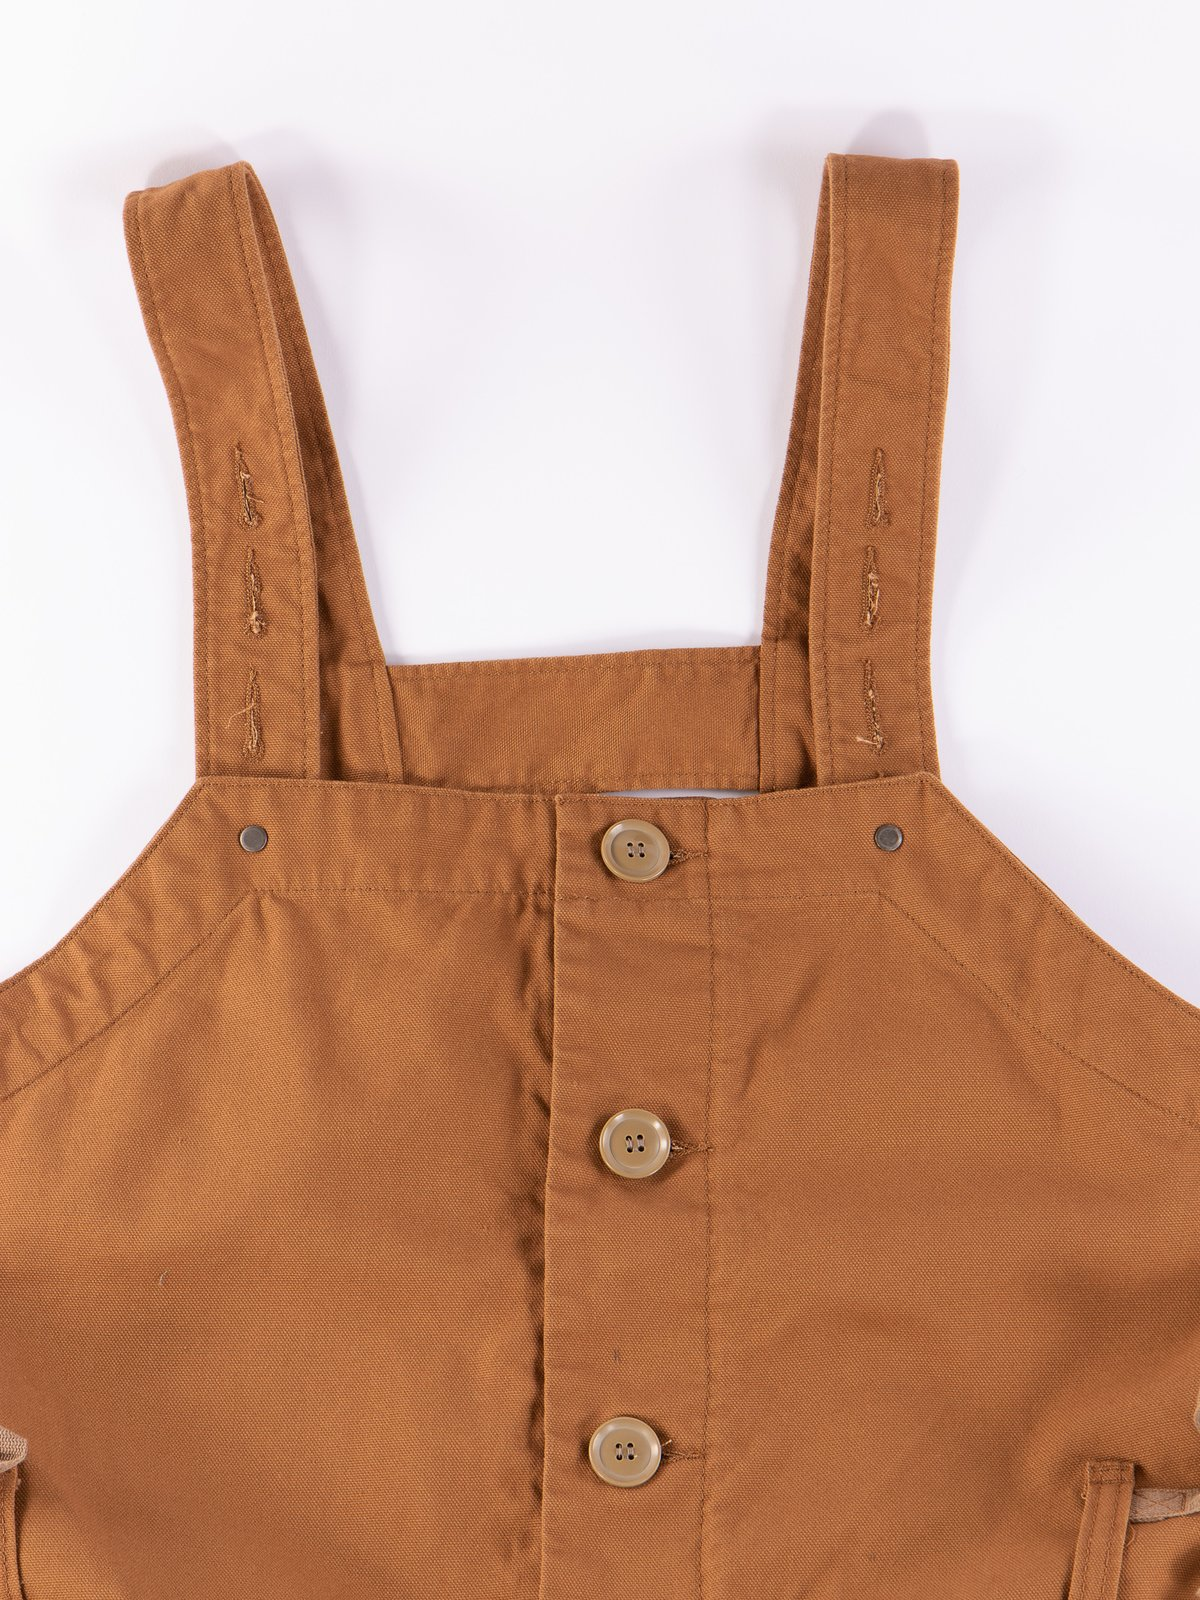 Brown 12oz Duck Canvas Waders - Image 5